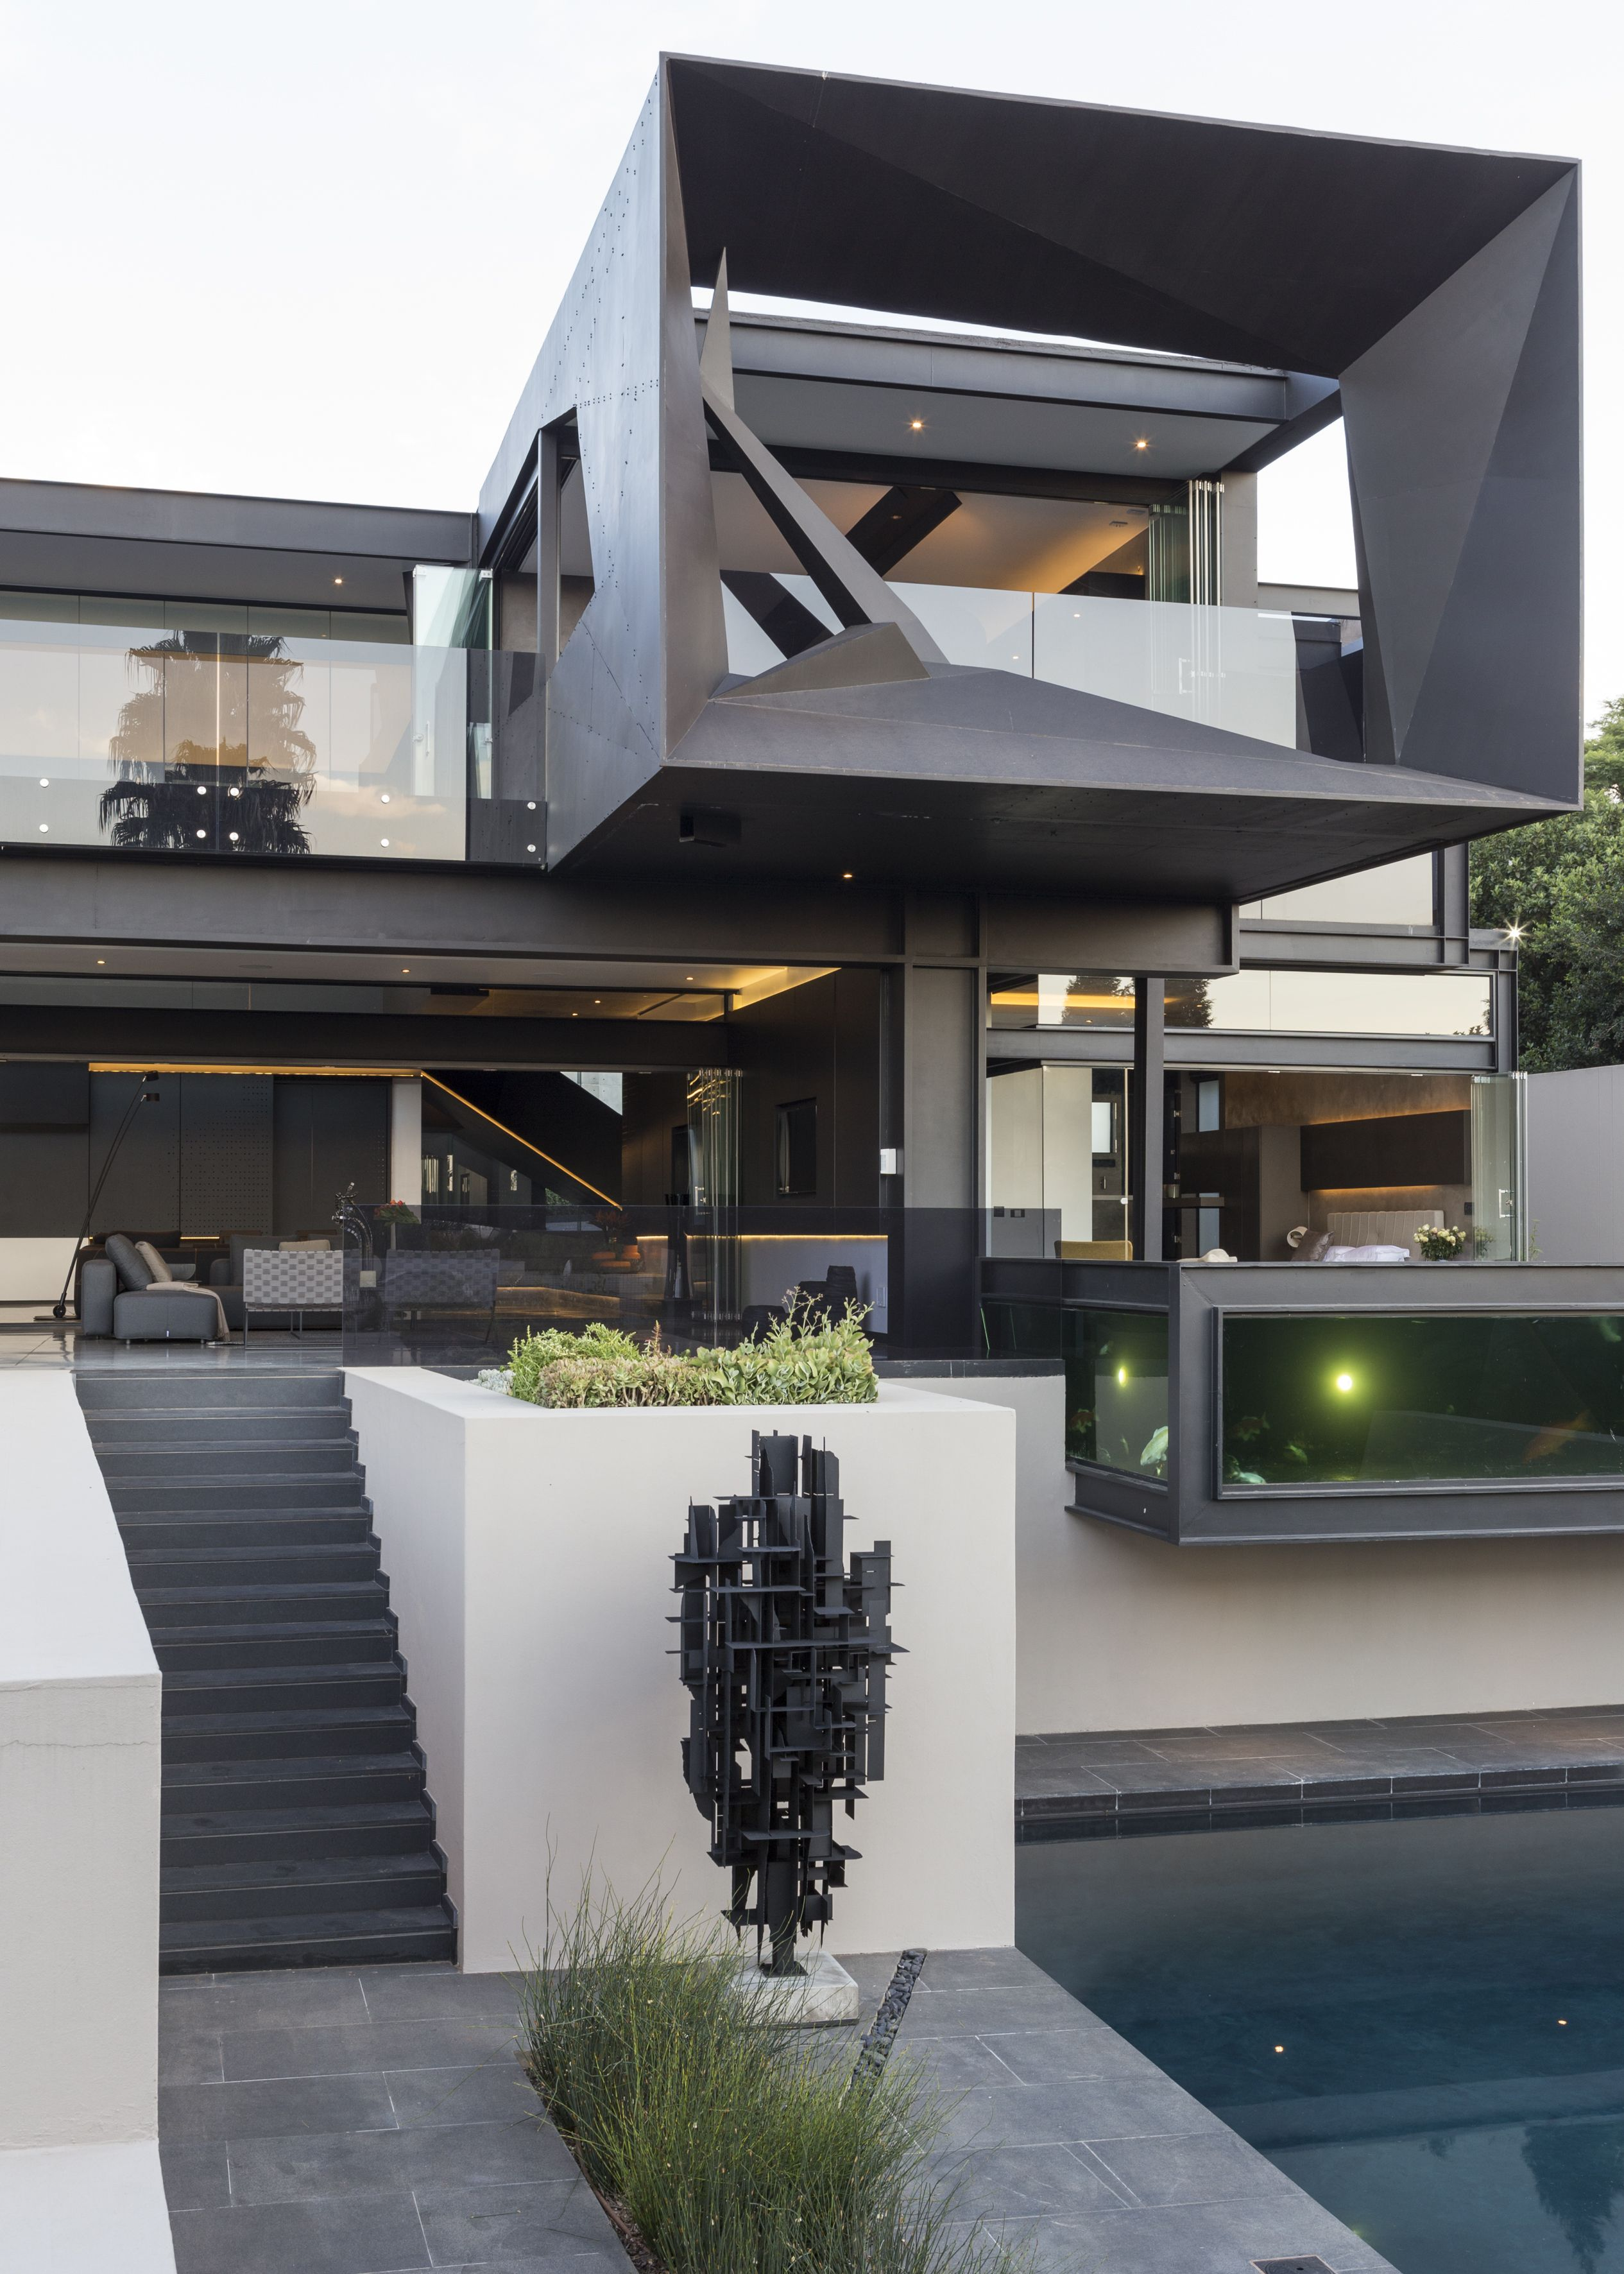 Best houses in the world amazing kloof road house archibeast architecture  also rh id pinterest